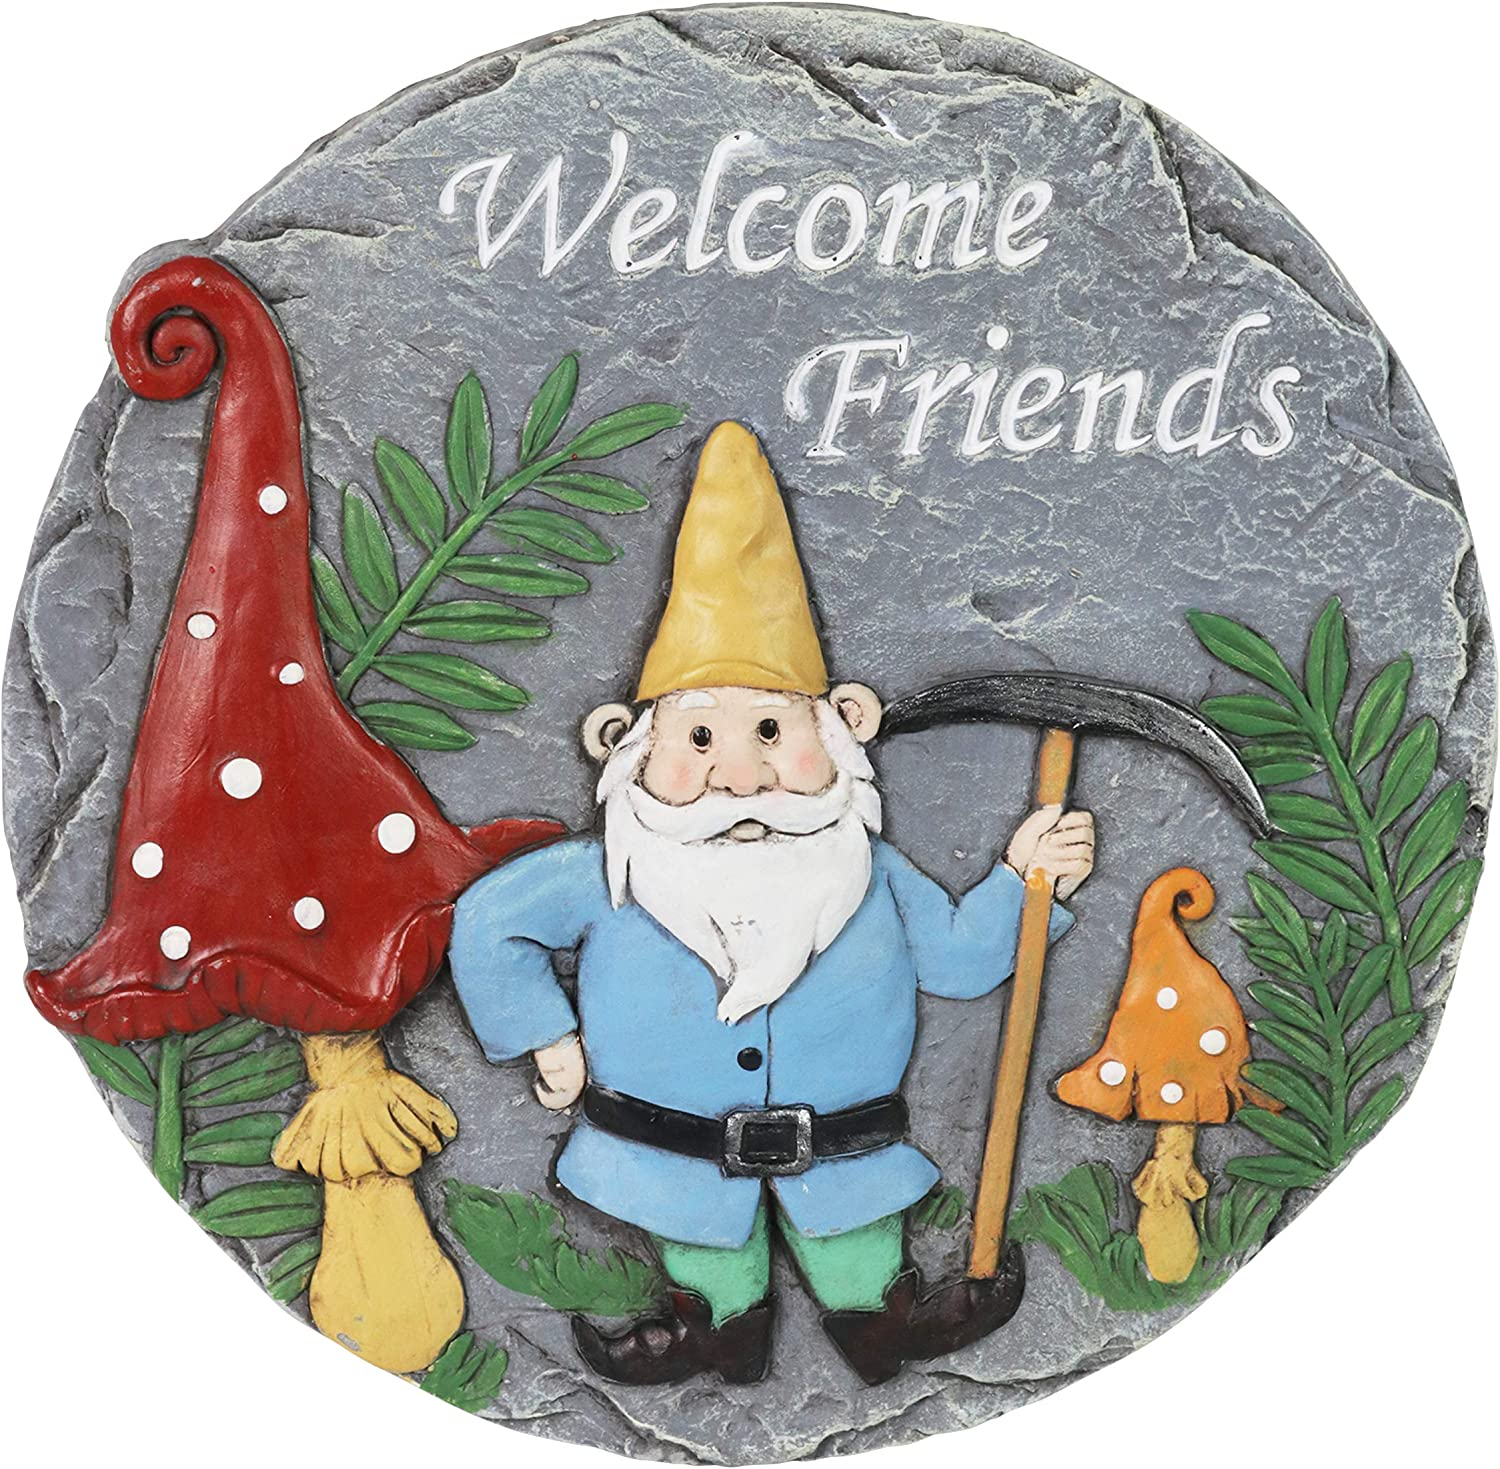 """Exhart Stepping Stone, Welcome Friends Garden Stone Mining Gnome – Colorful Garden Stepping Stones for Pathway – Durable & Hand Painted Resin Outdoor Stepping Stone for Home & Garden Décor, 10""""x11"""""""